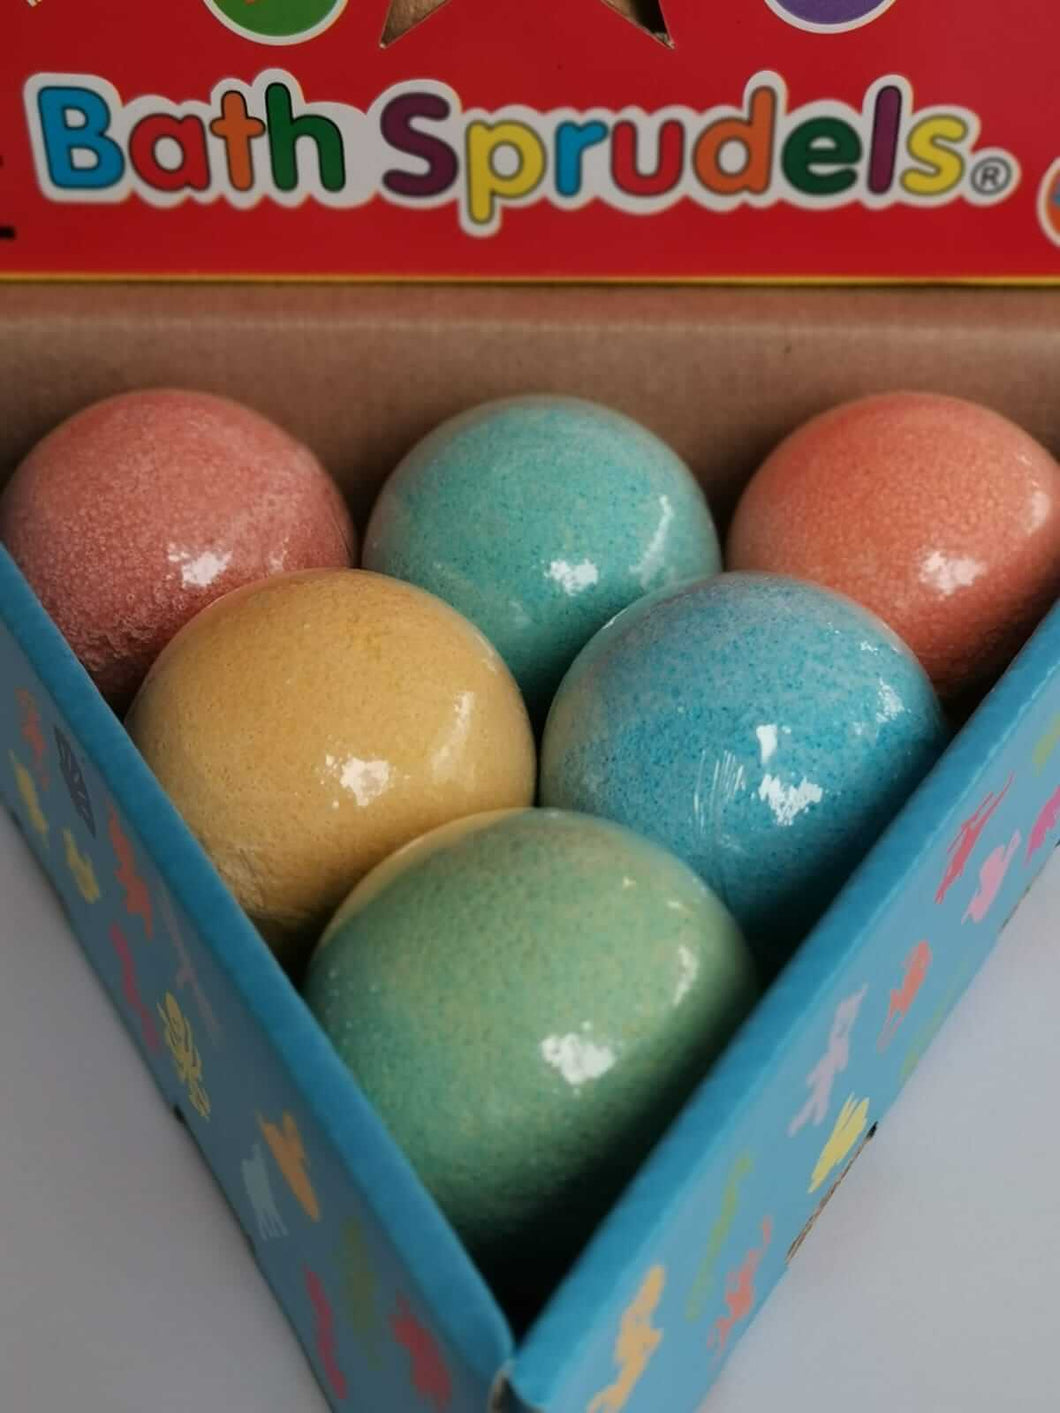 Bath Bomb Sprudels® - pack of 6 (Coral, Turquoise, Yellow, Orange, Green, Blue)